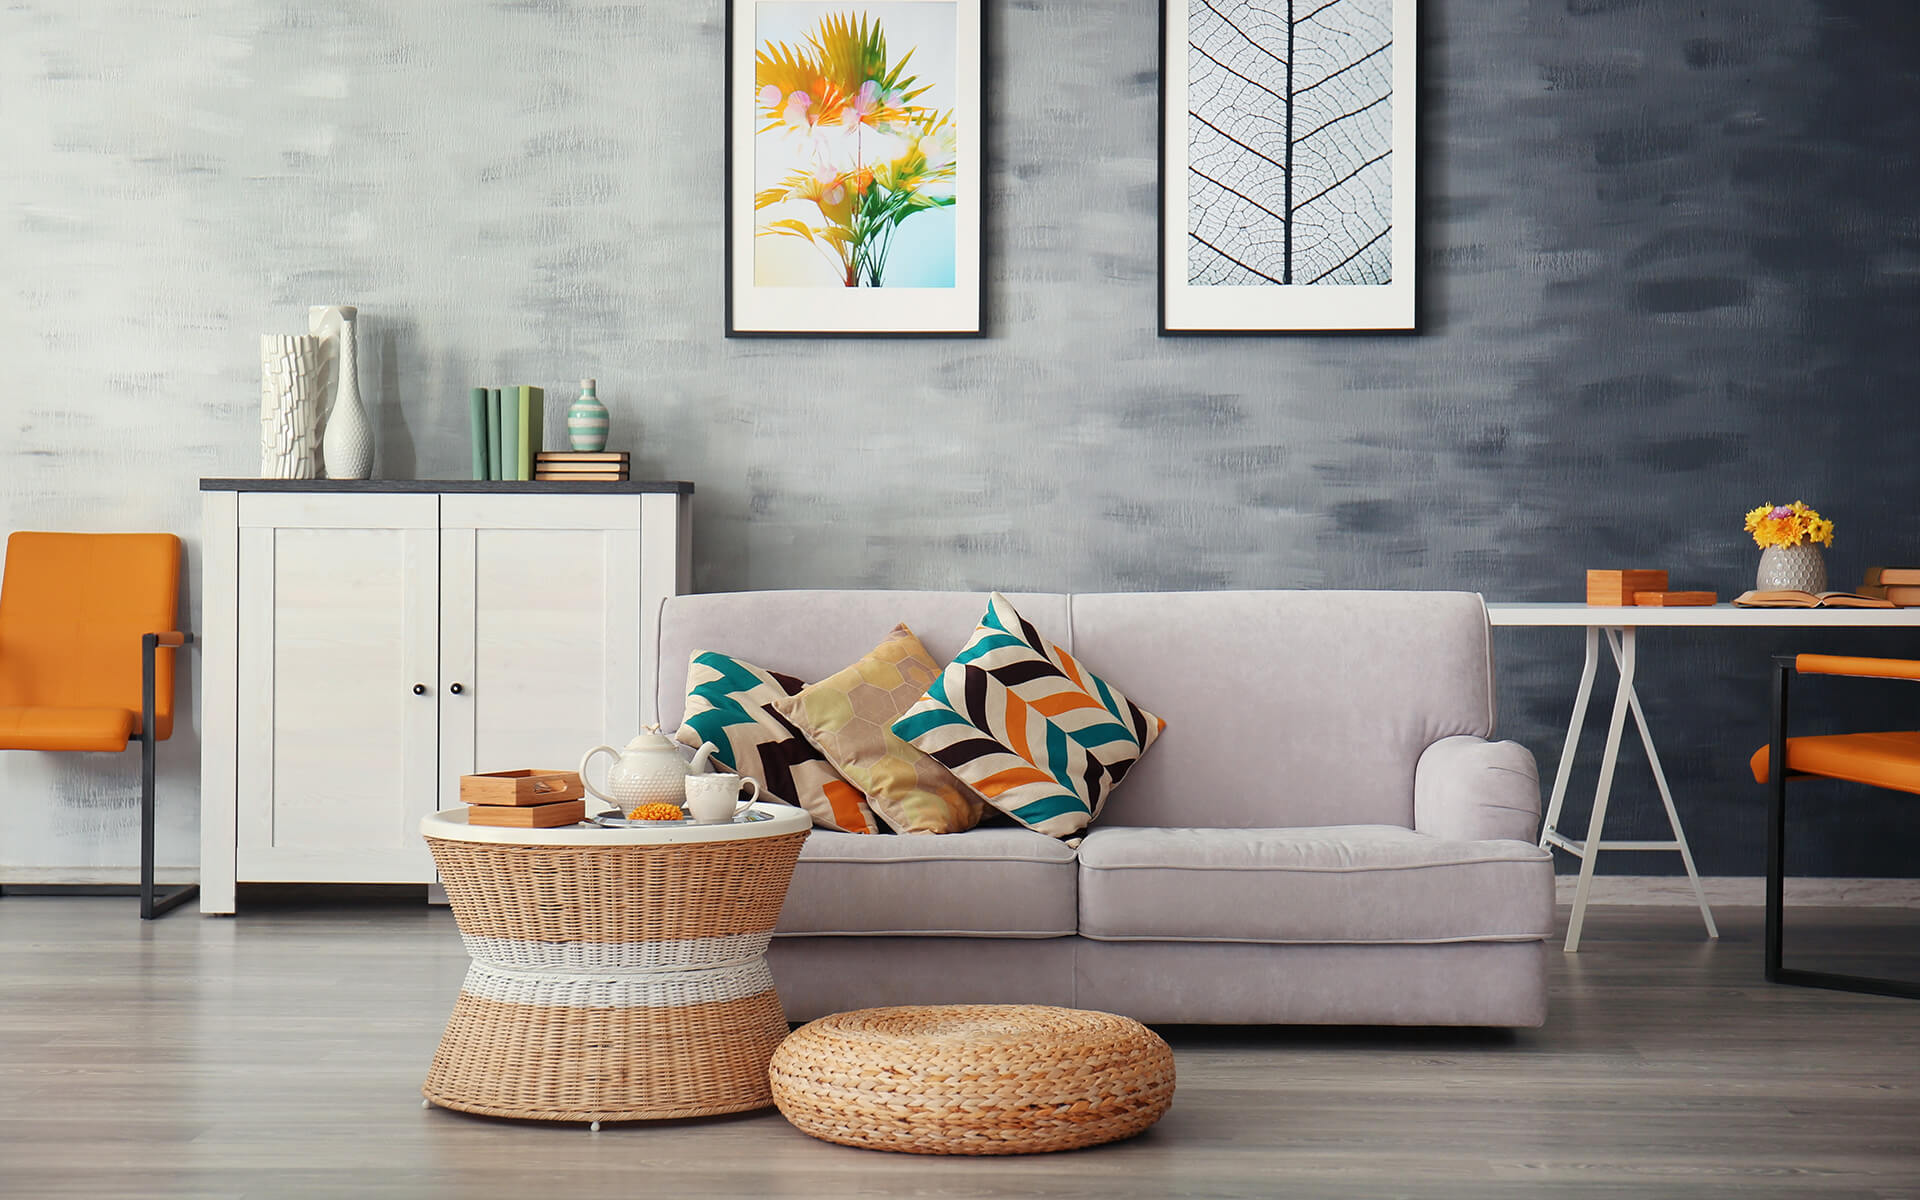 https://renowise.bold-themes.com/house-painting/wp-content/uploads/sites/6/2018/09/post_03.jpg